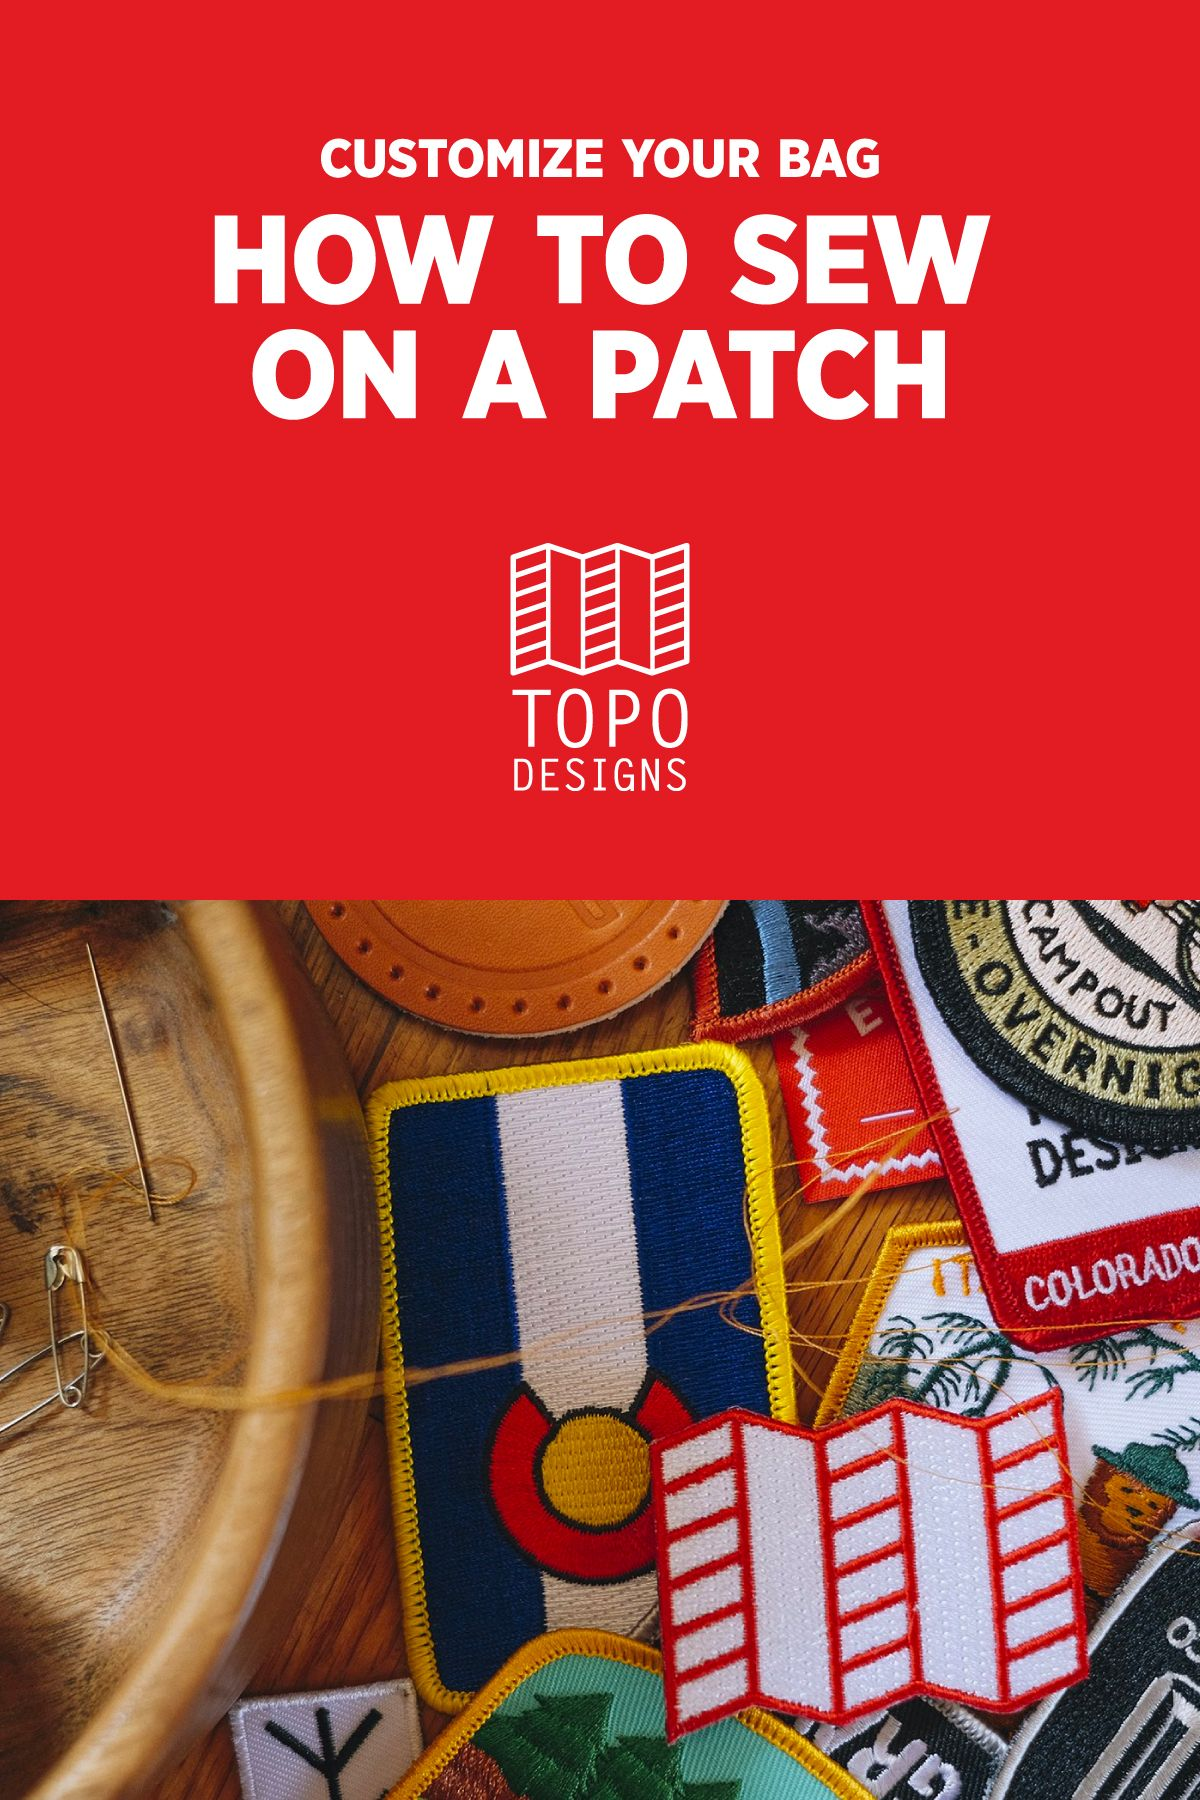 Customize With Patches: A Step-by-Step Guide | Packs & Bags